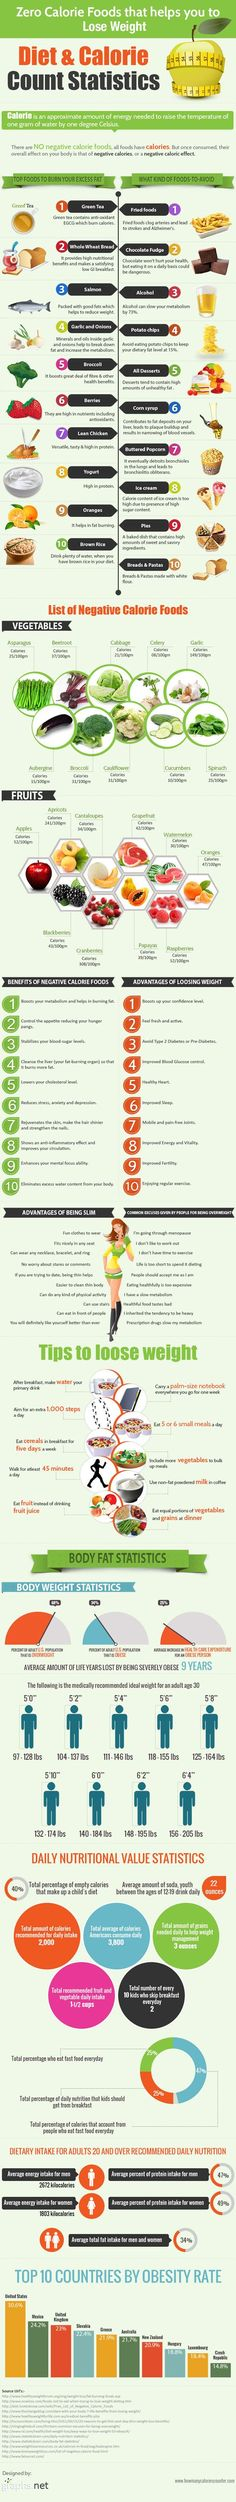 Zero calorie foods that help you lose weight [Infographic] - http://www.urbanewomen.com/zero-calorie-foods-that-help-you-to-lose-weight.html: